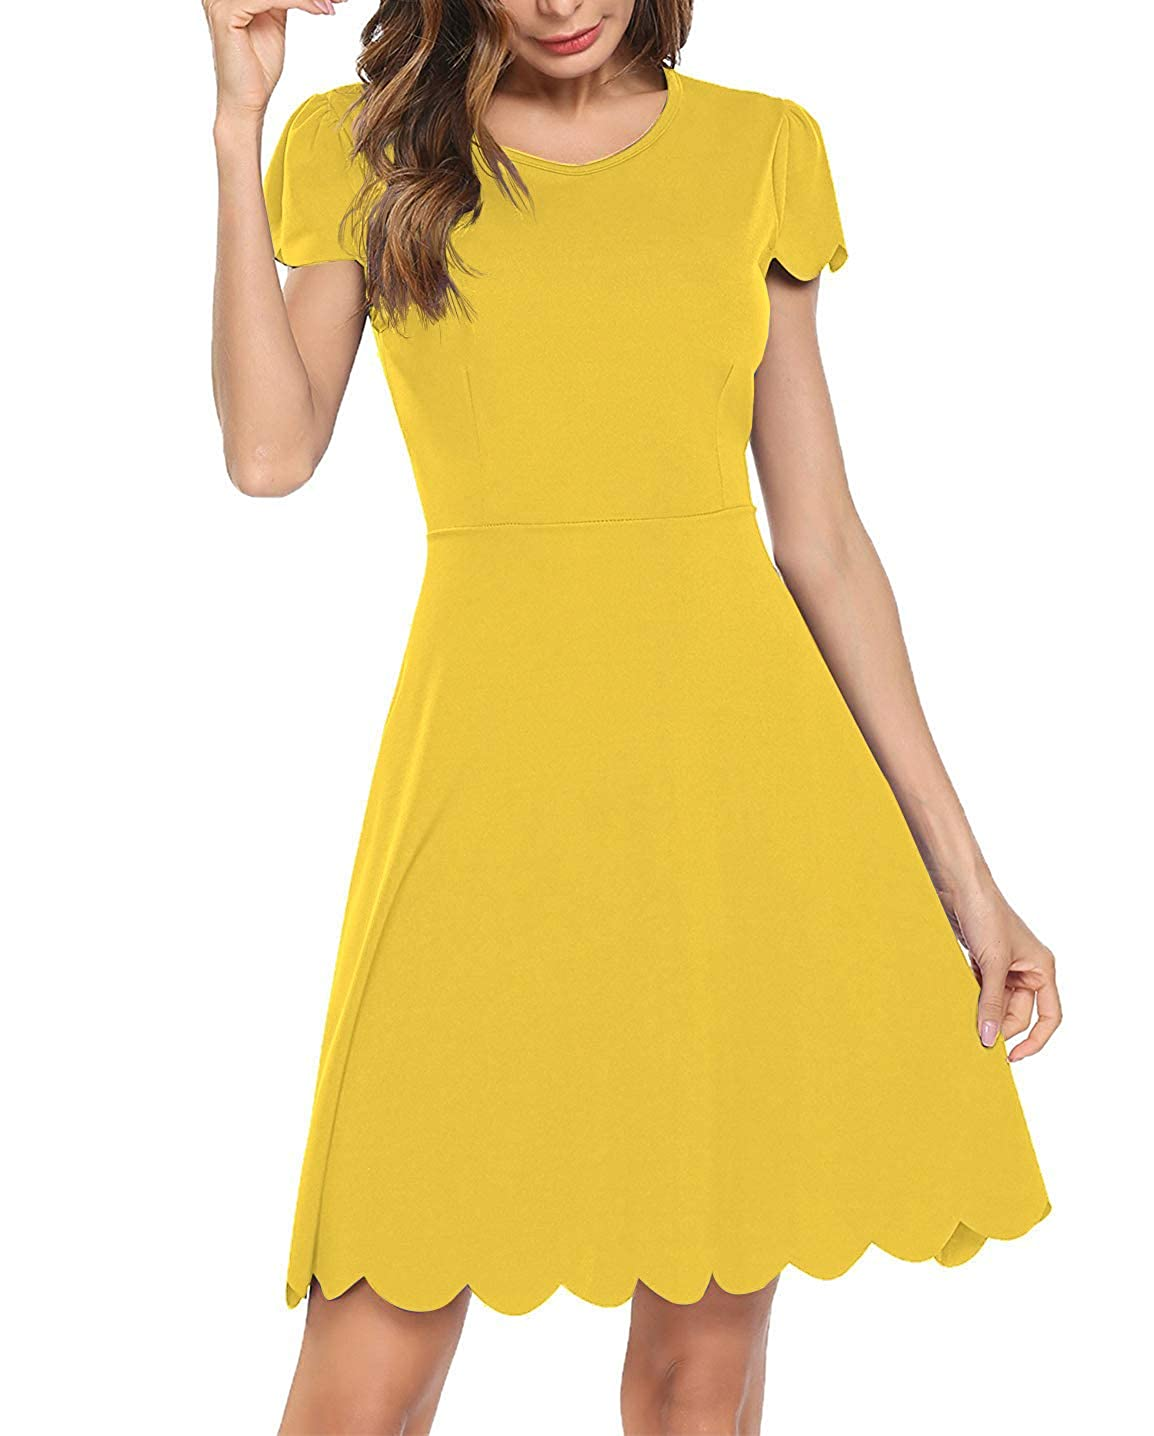 5babb79d03b Bloggerlove Women s Summer A-Line Scallop Pleated Skater Dress at Amazon  Women s Clothing store